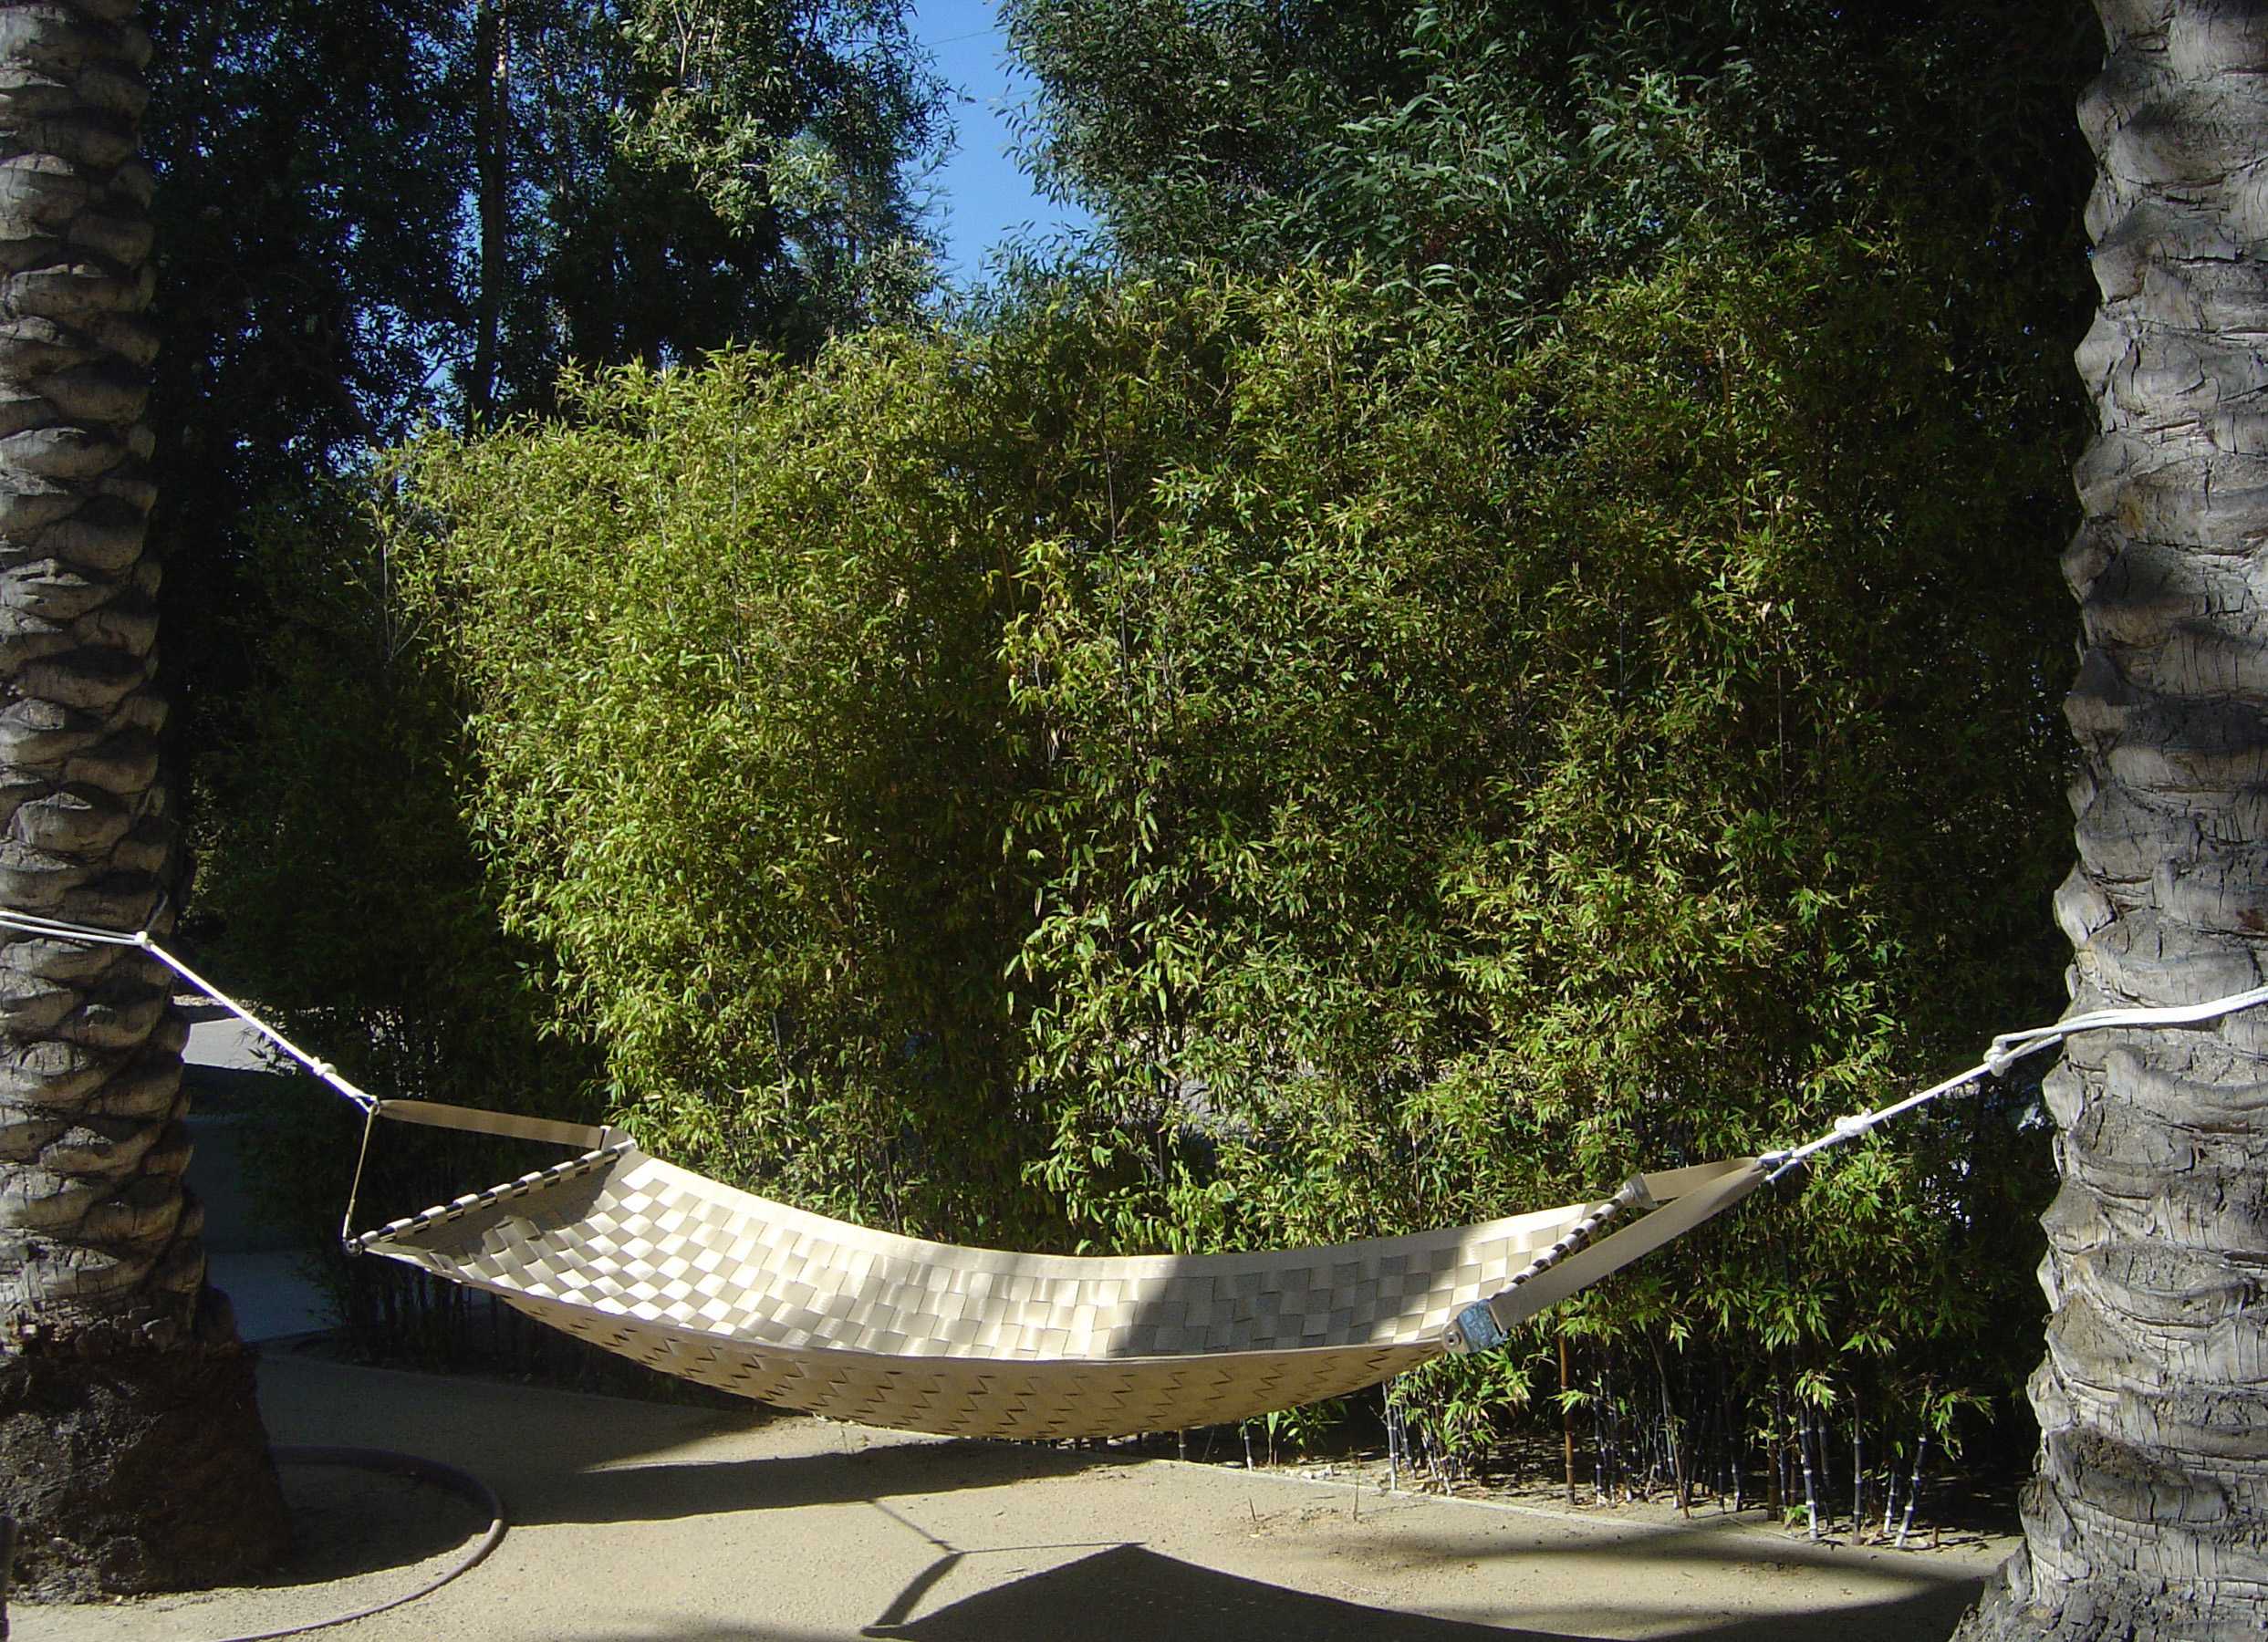 Champagne Ting Sling seatbelt hammock, hanging between two palm trees in an outdoor environment.